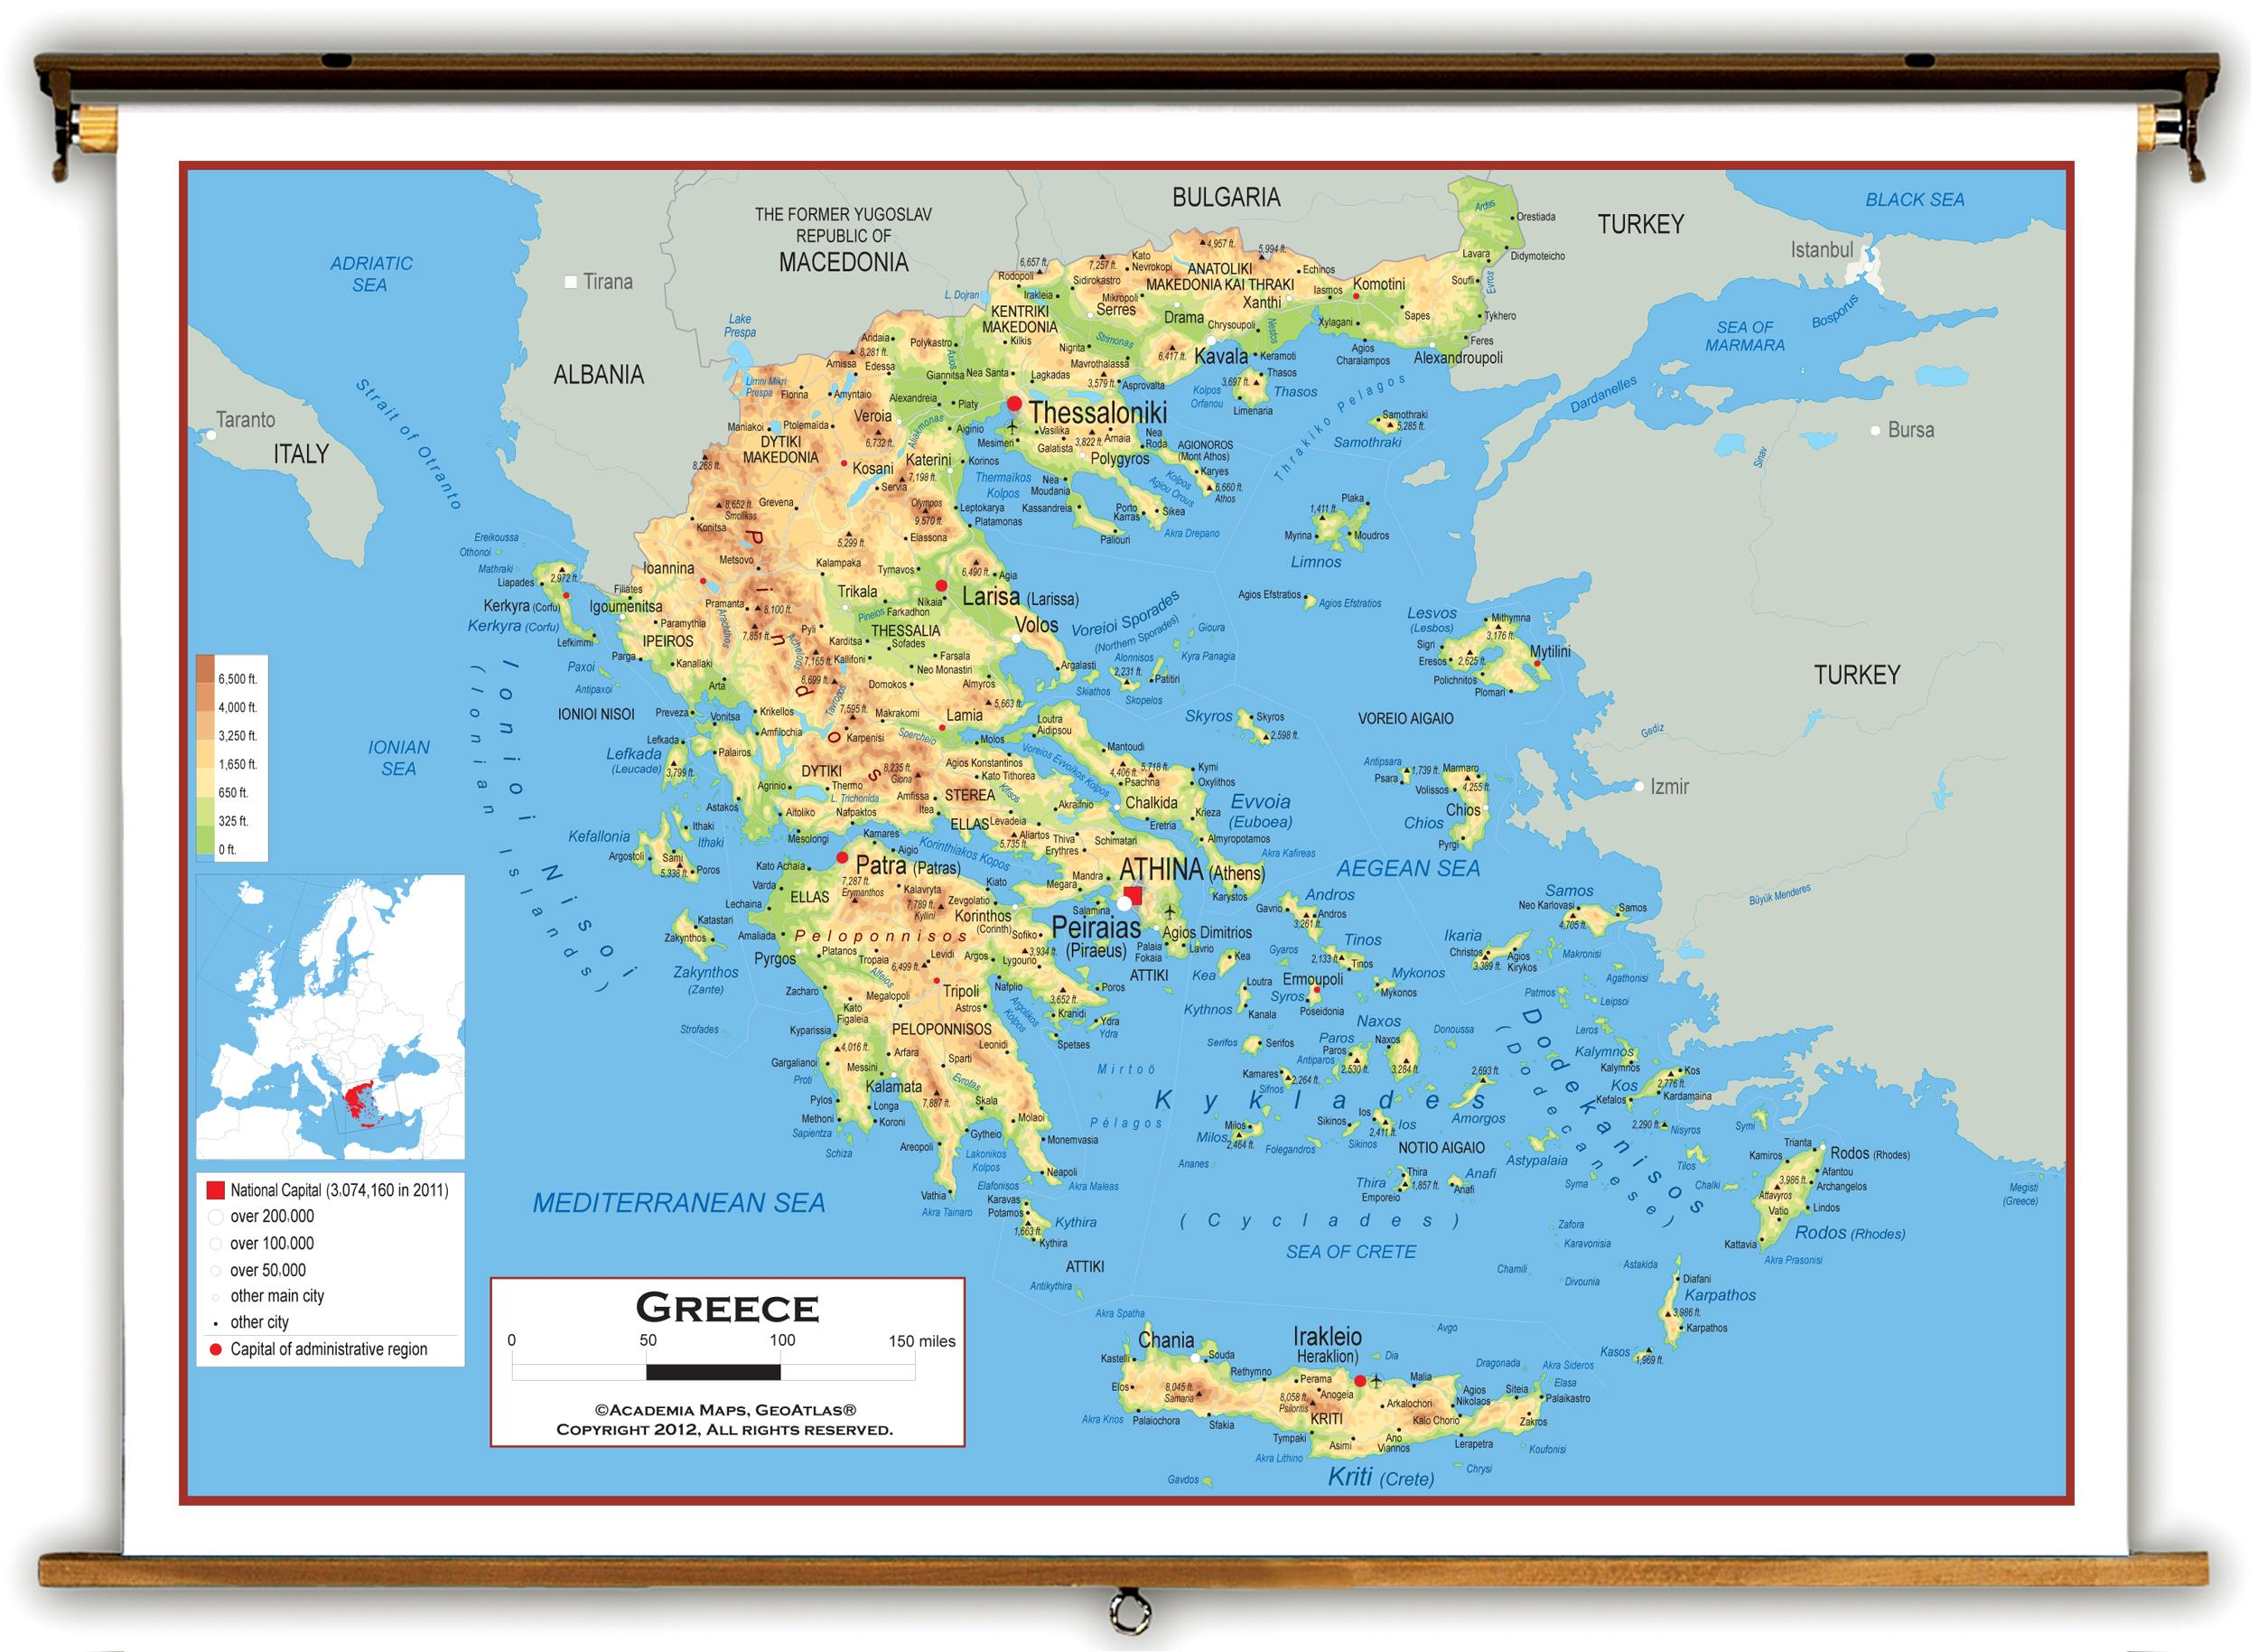 Greece physical map Physical map of Greece Southern Europe Europe